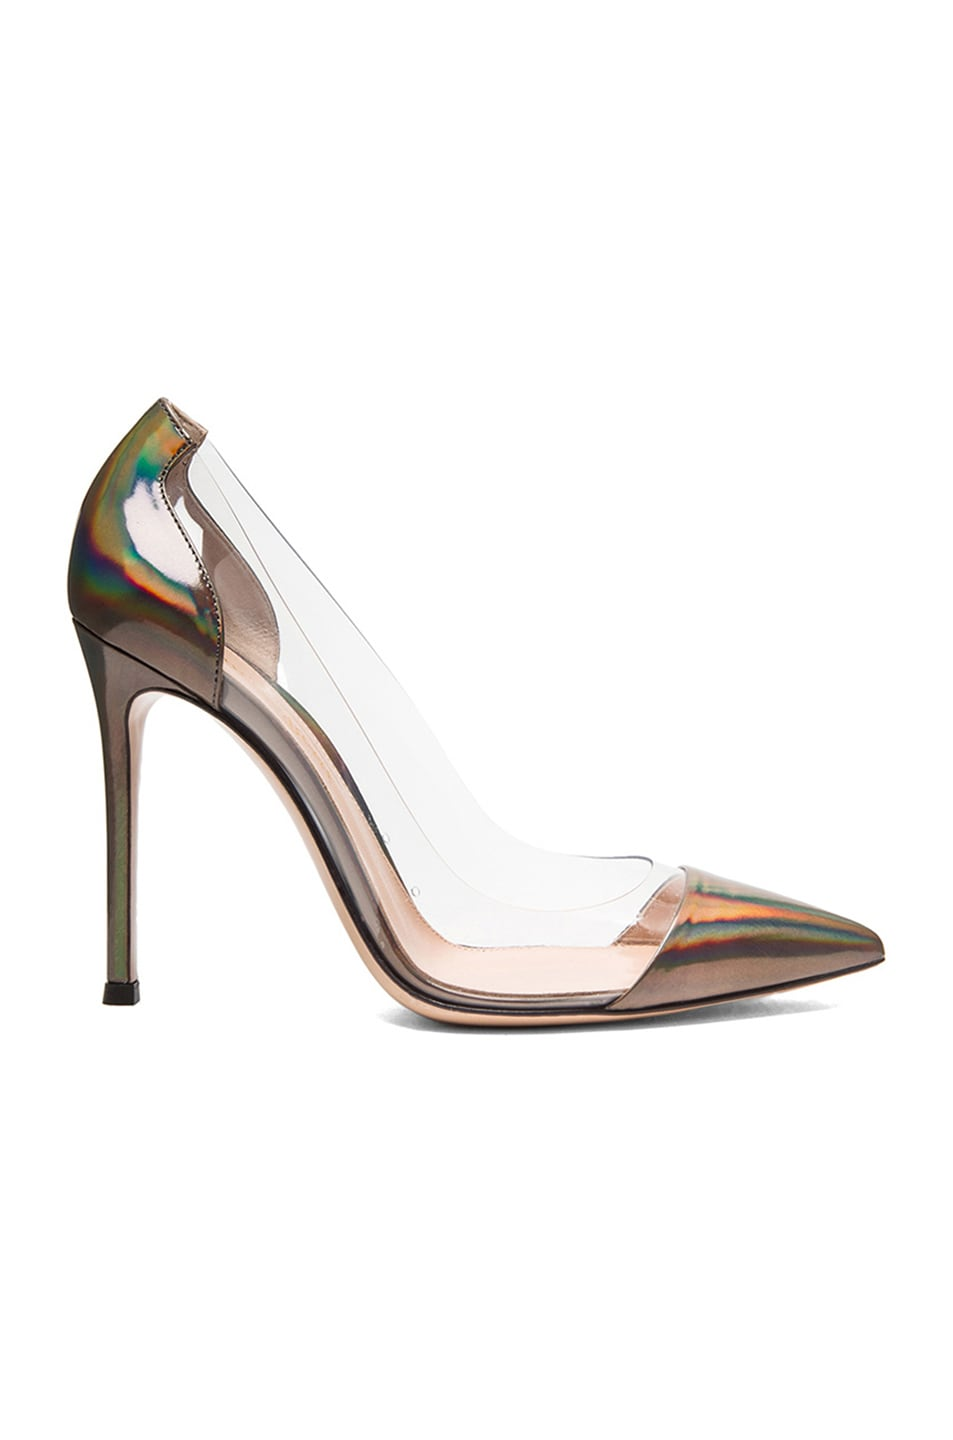 Image 1 of Gianvito Rossi Metallic Leather Plexi Pumps in Holographic